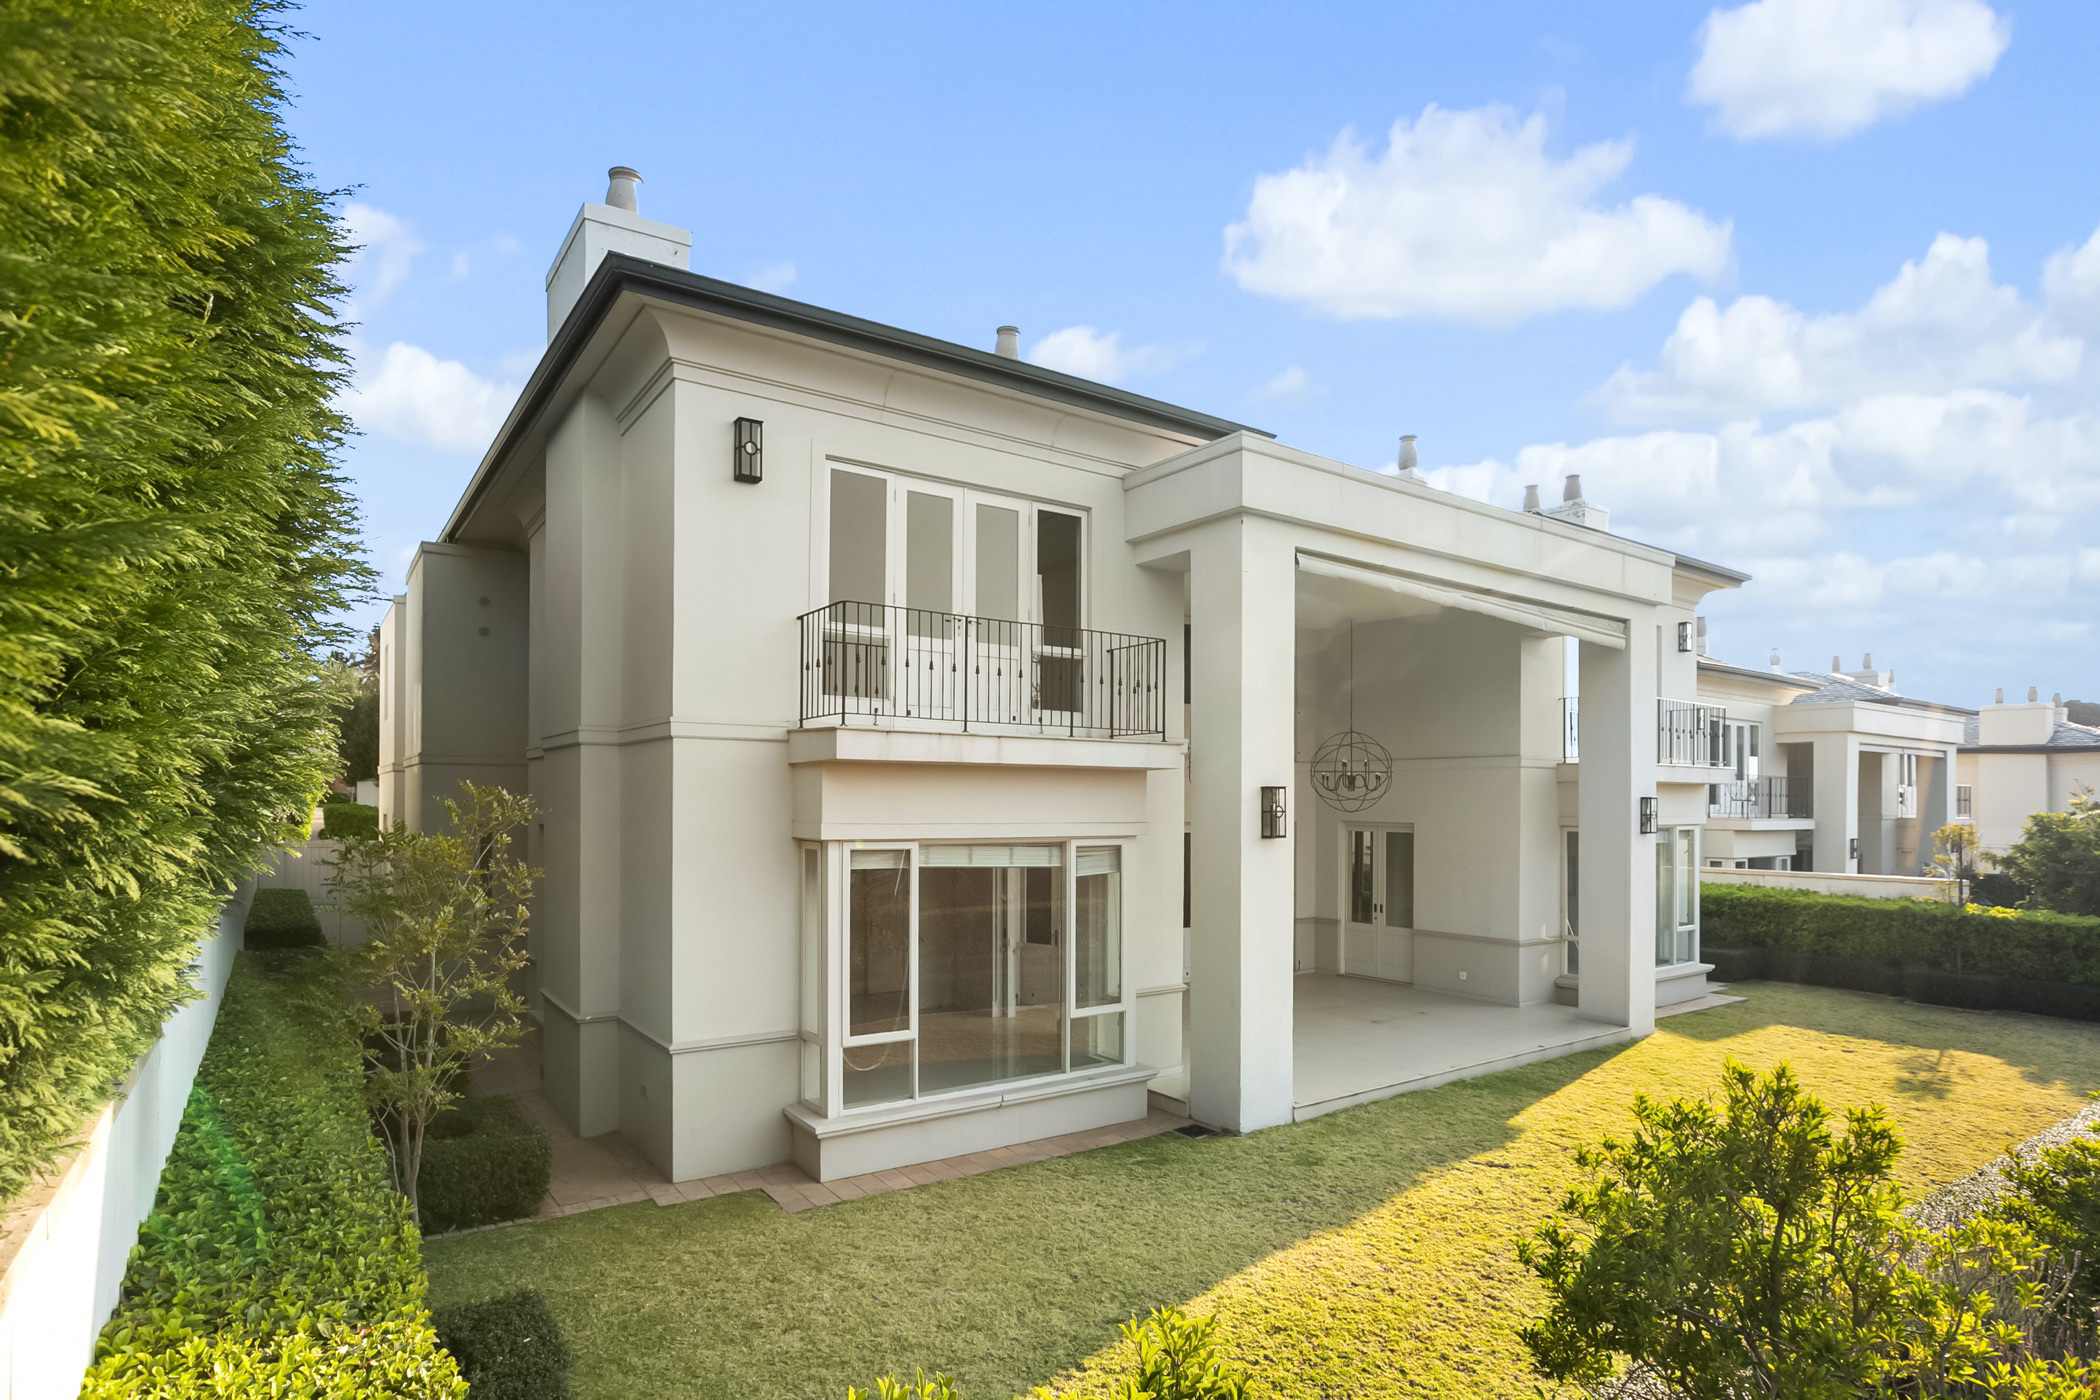 5 bedroom cluster house to rent in Hyde Park (Sandton)